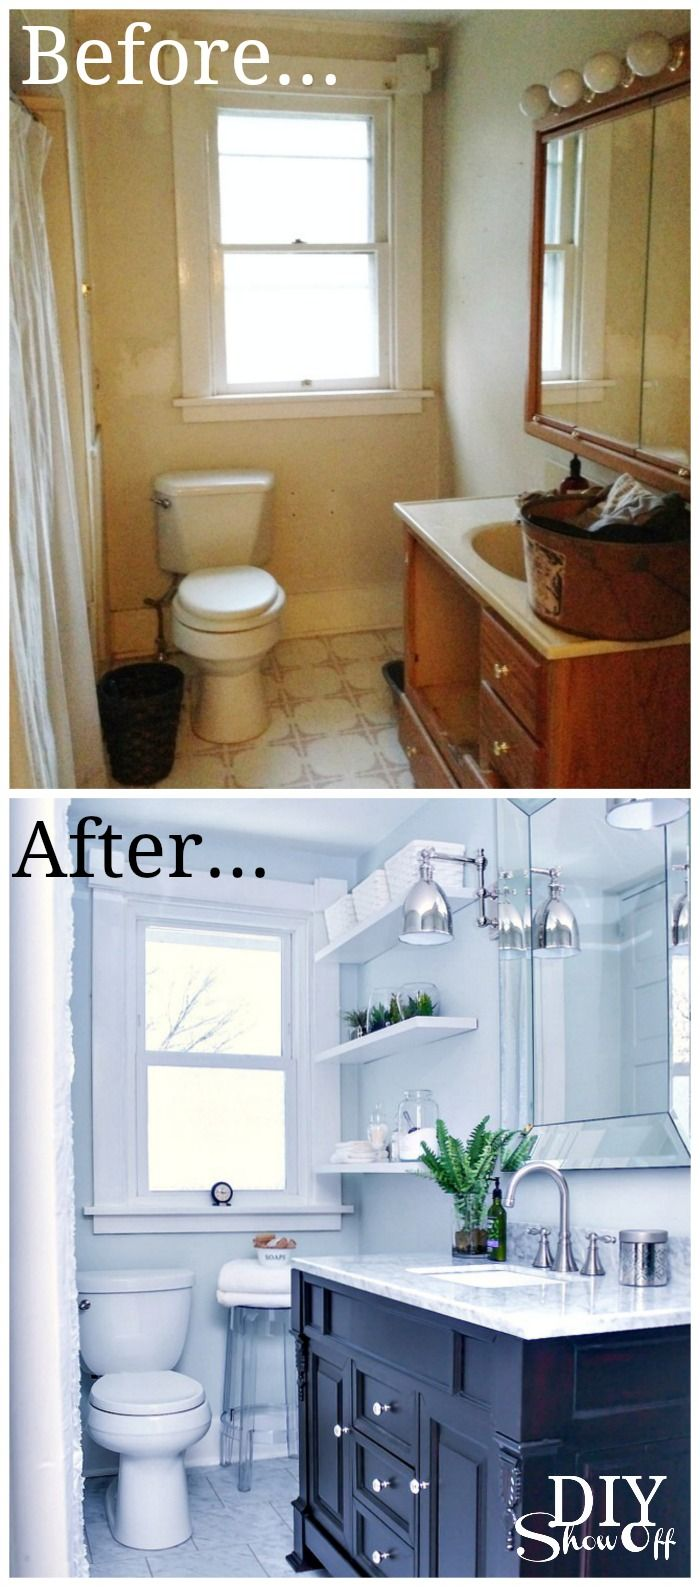 Bathroom Before and After - DIY Show Off ™ - DIY Decorating and Home Improvement Blog